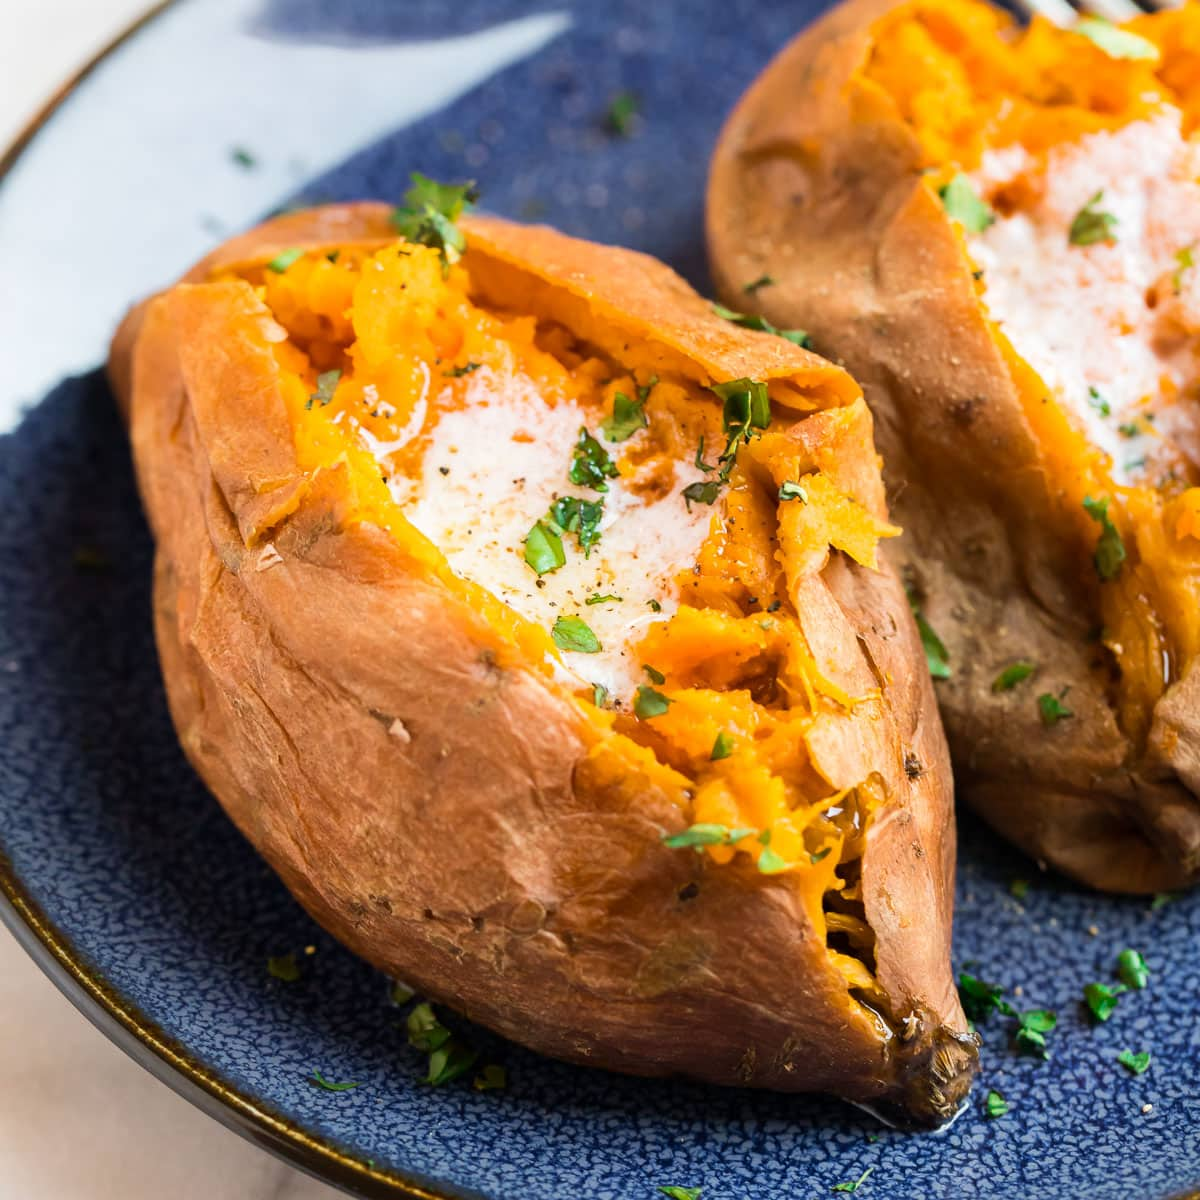 A sweet potato that's been cut open and served with butter